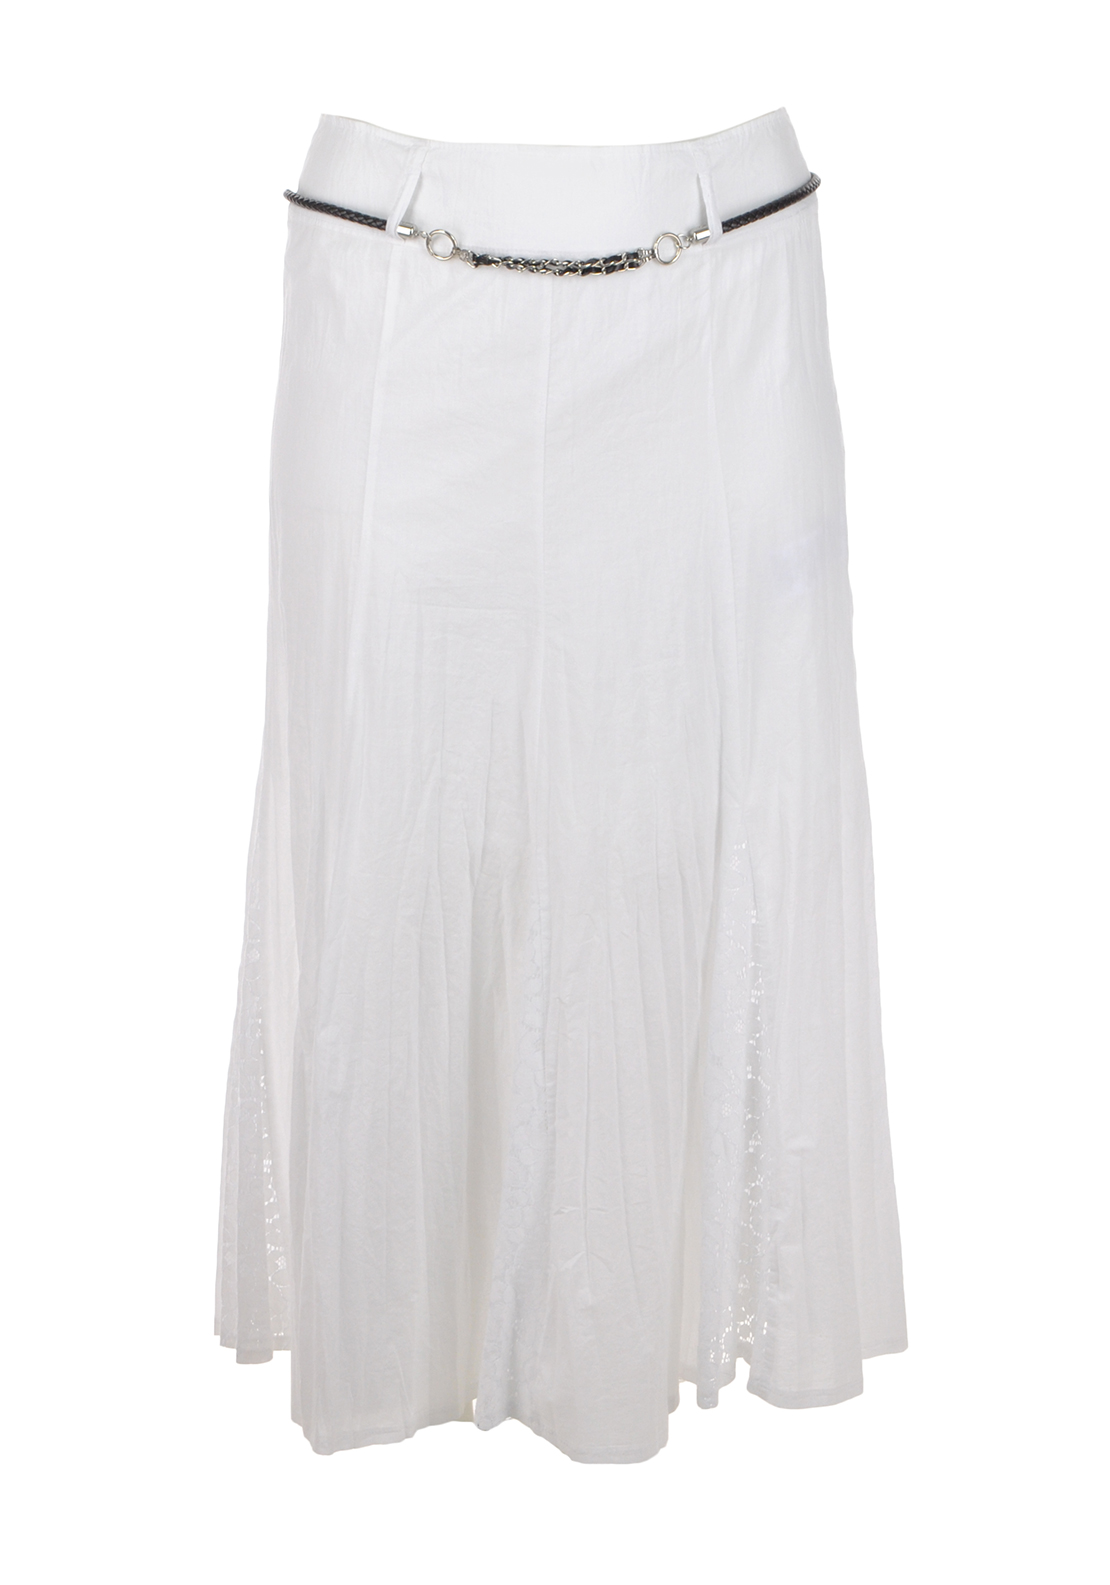 Gerry Weber A-Line Lace Trim Maxi Skirt, White